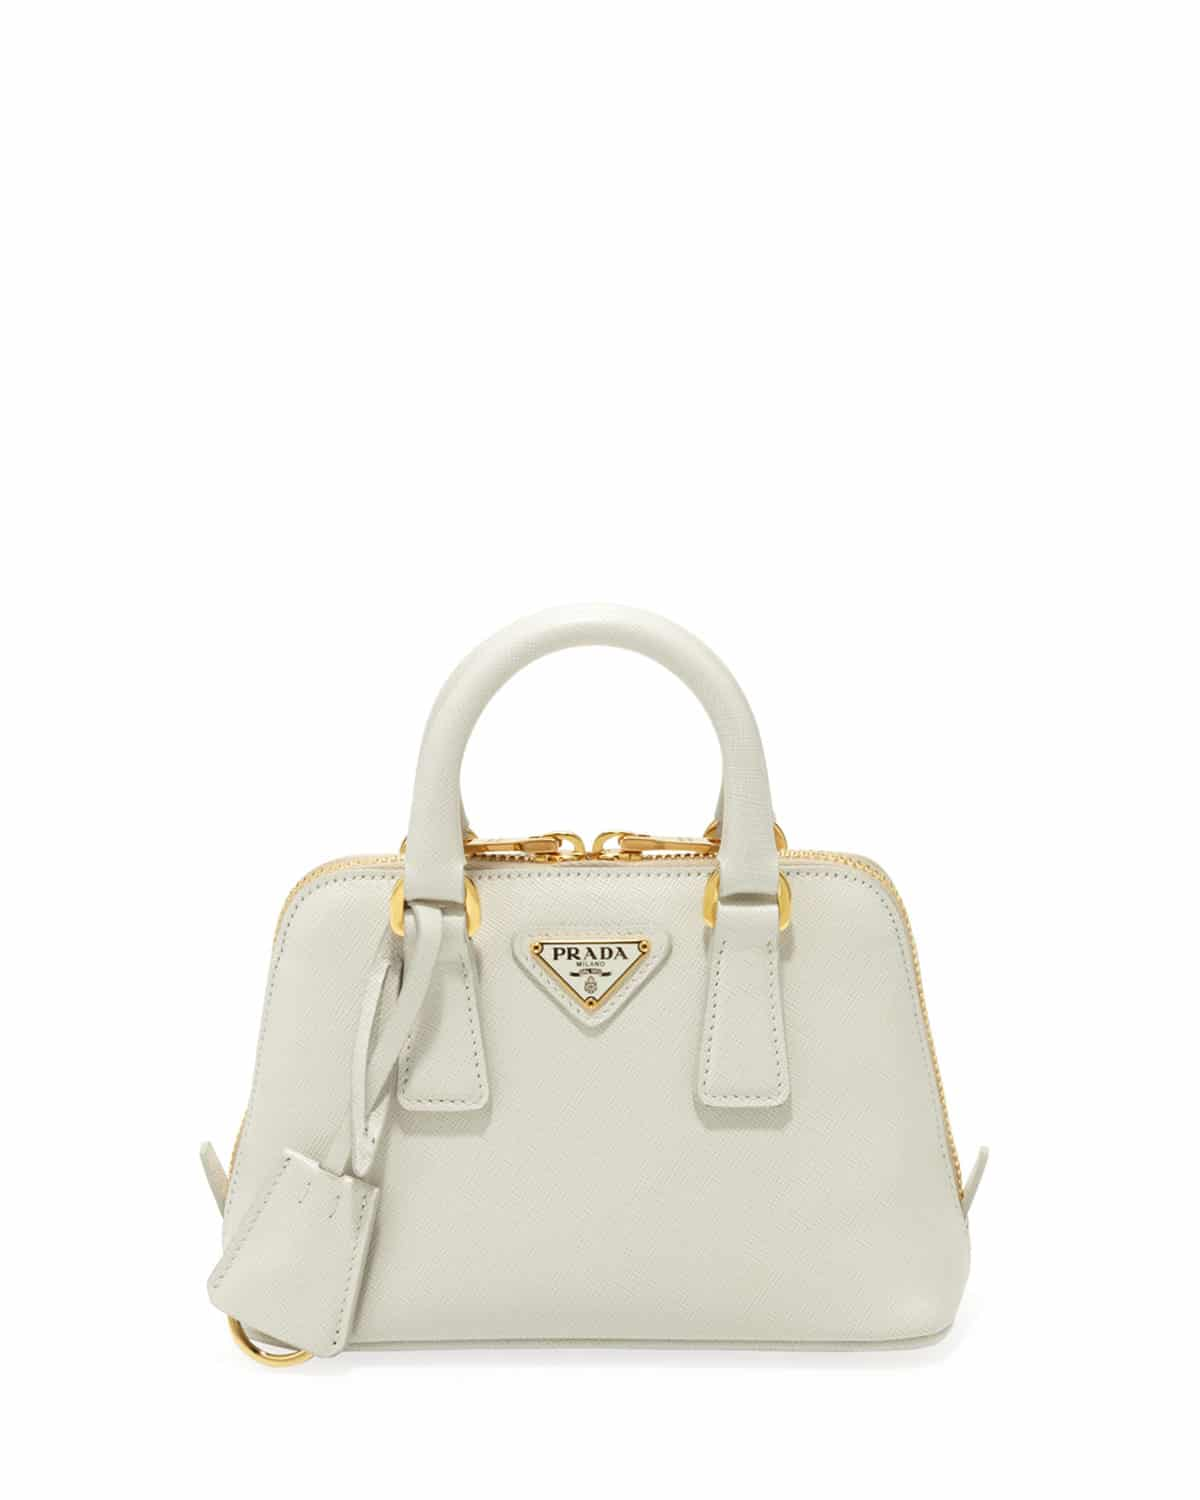 efed3b775a51 ... aliexpress prada white saffiano mini promenade bag 1fb25 bc461